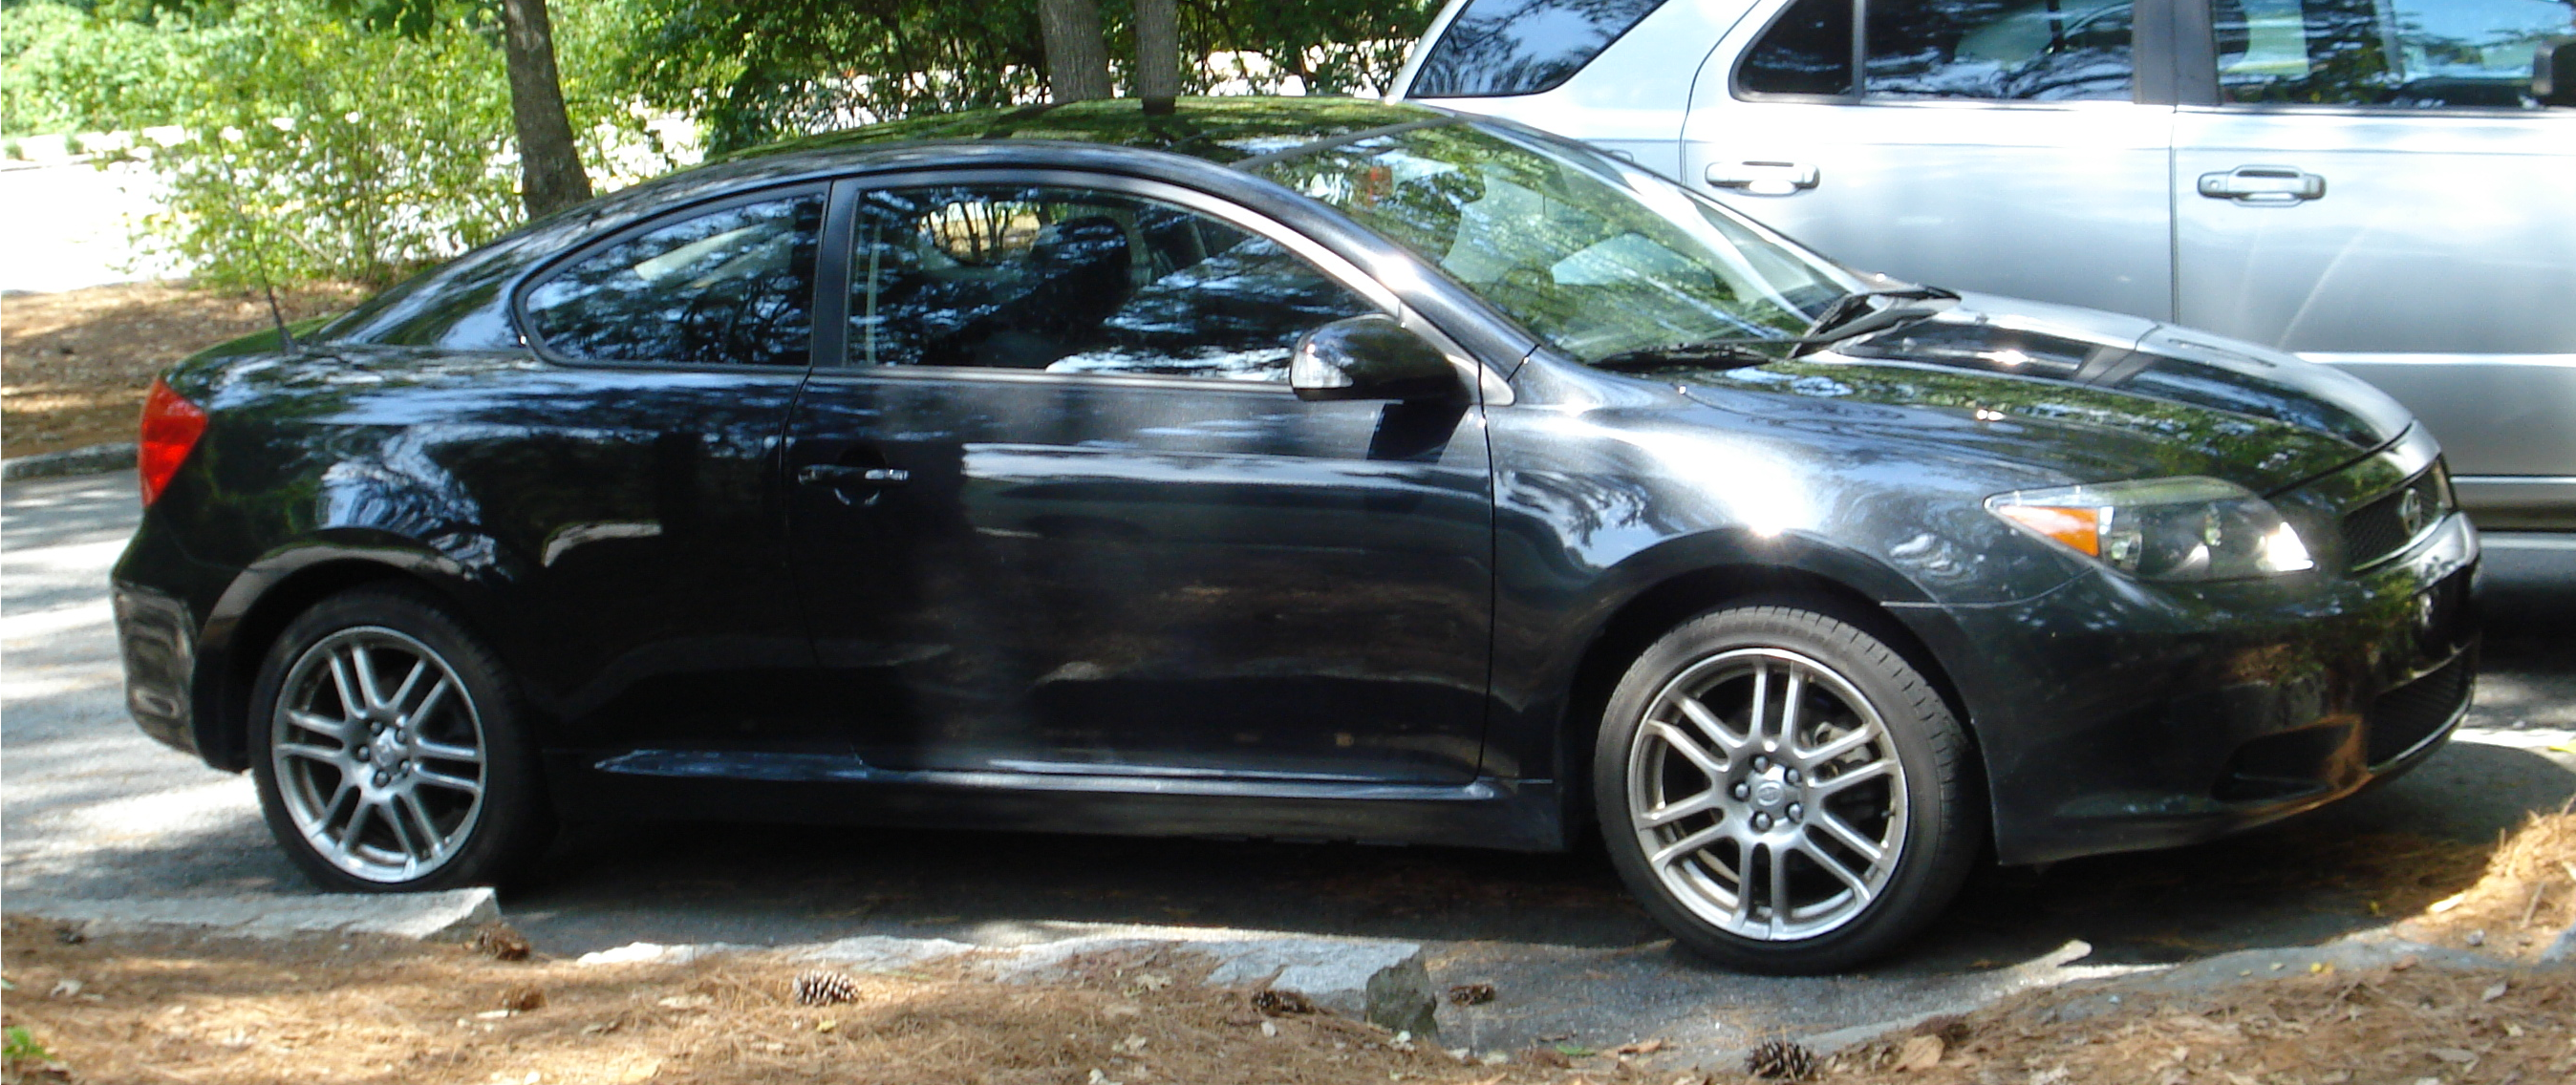 2006 Scion Tc #6